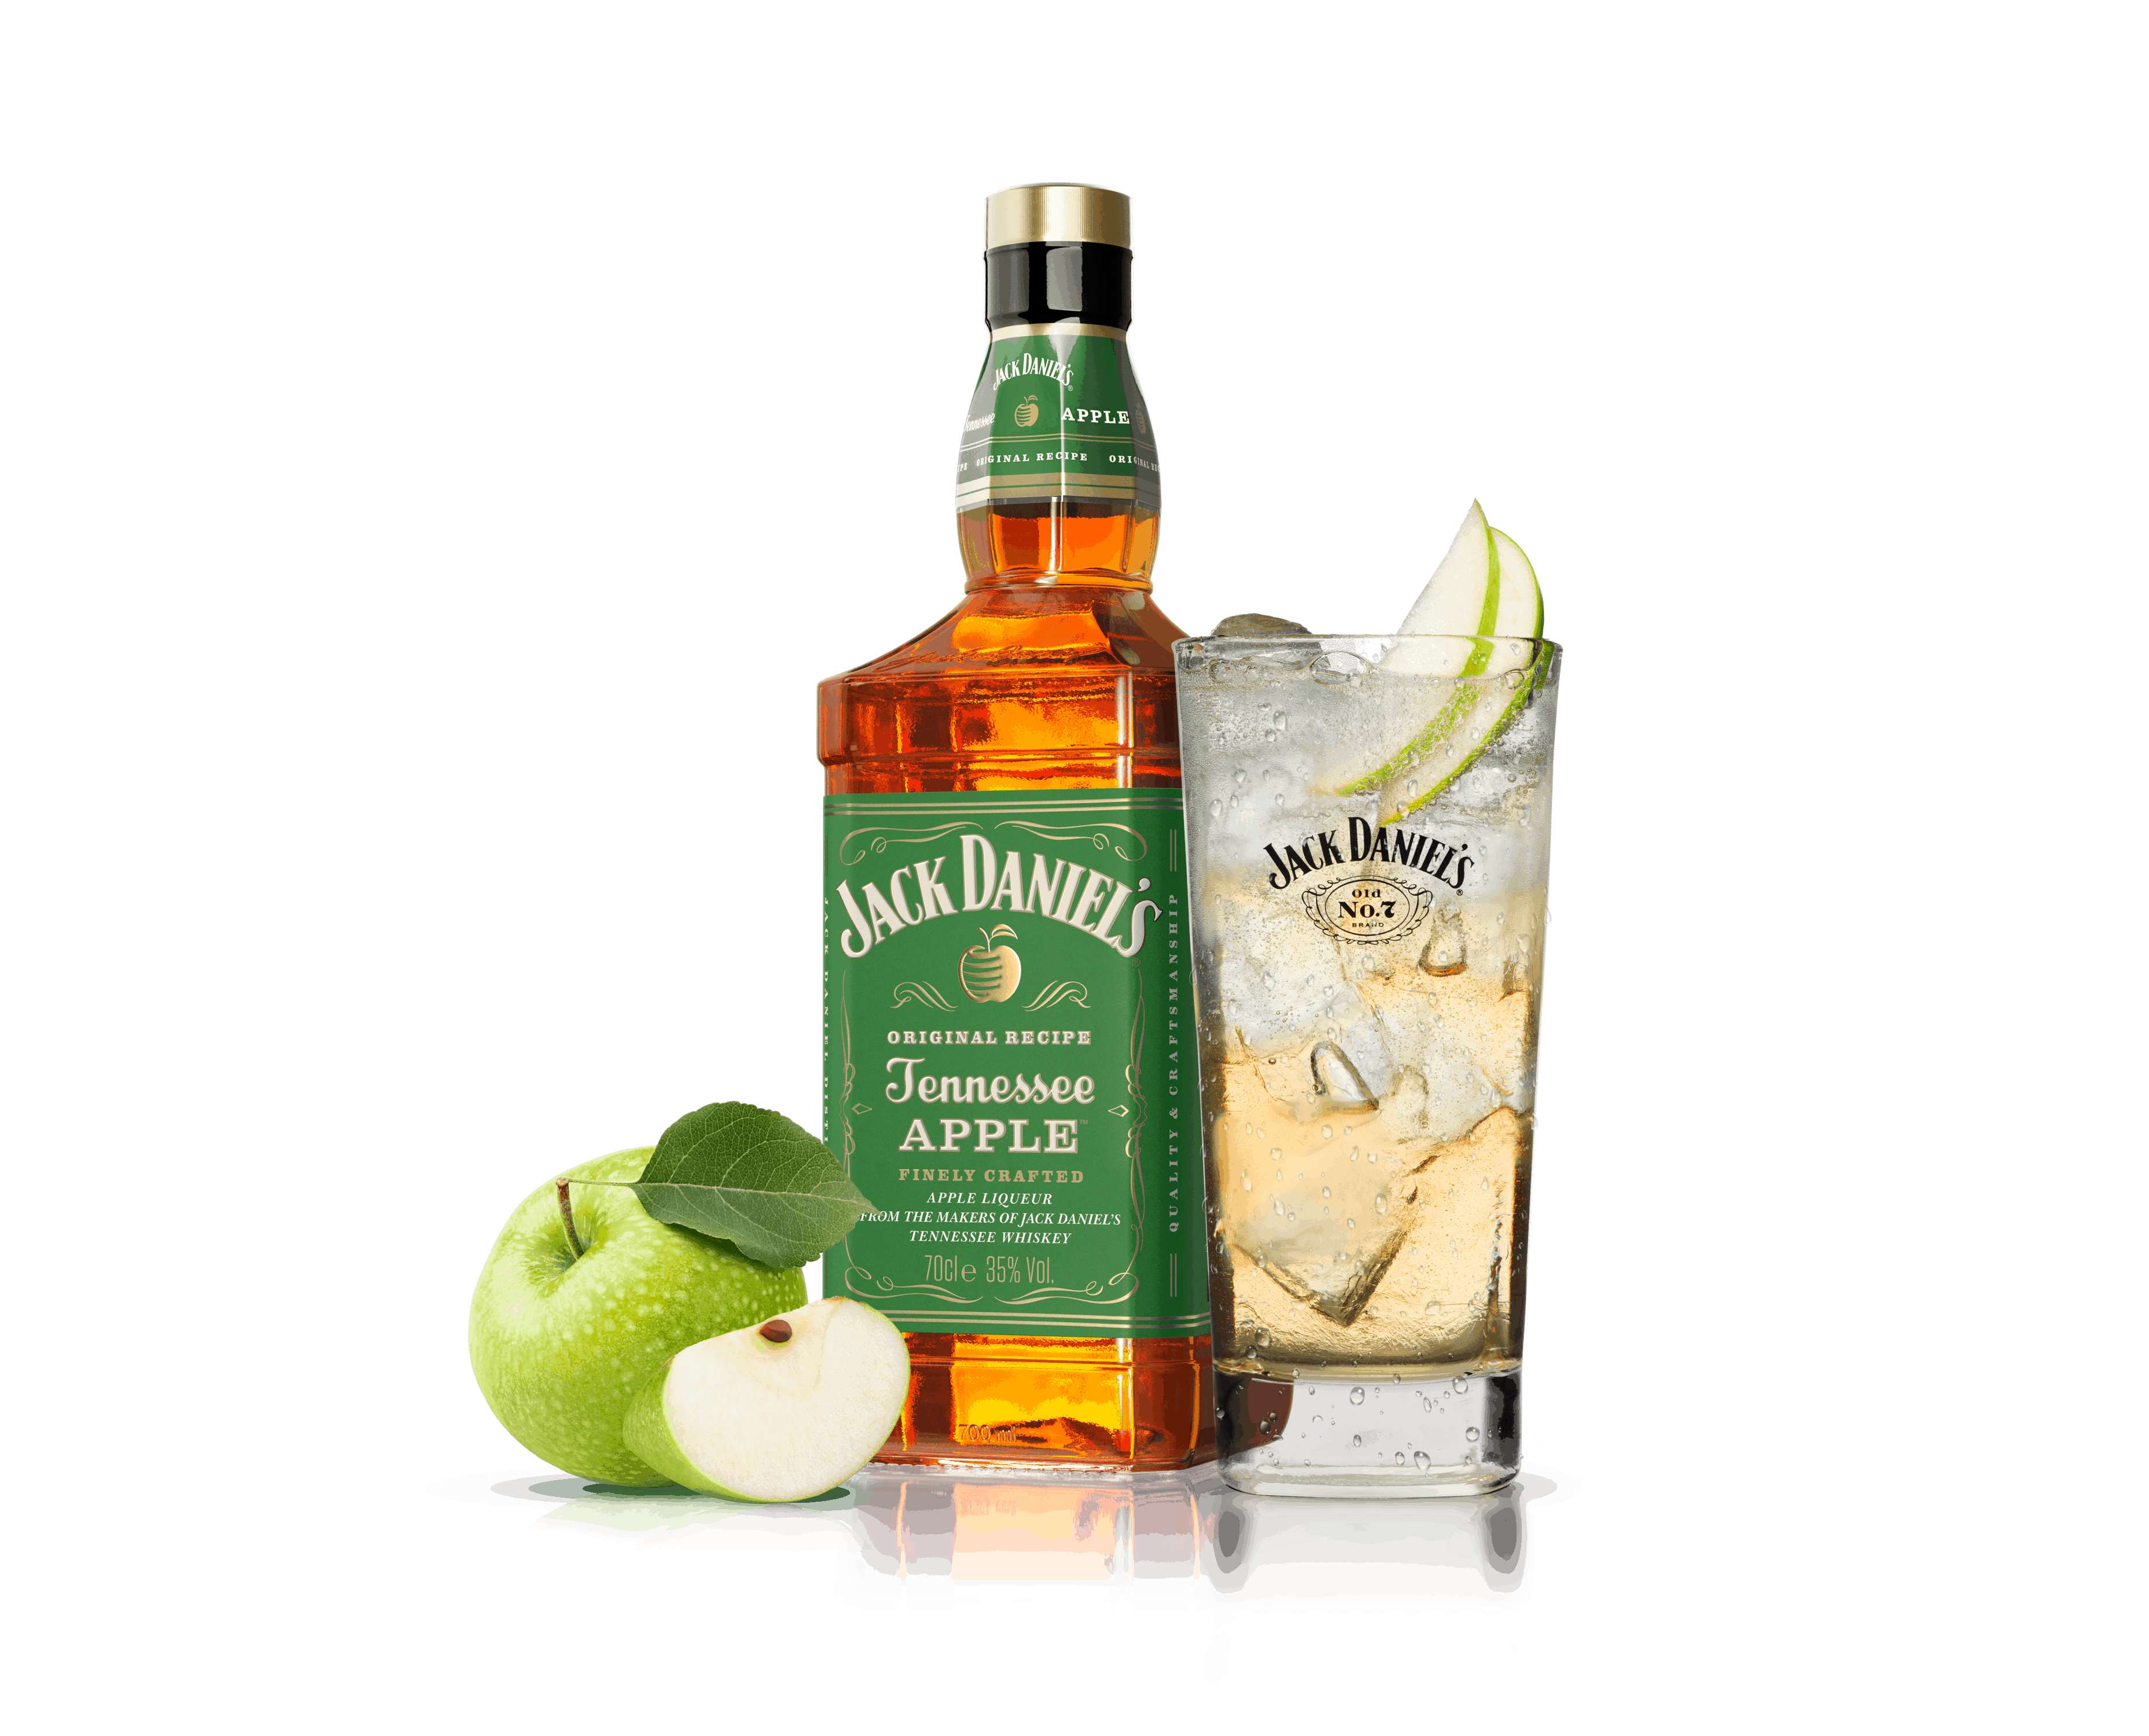 Proef de fruitige Jack Daniel's Tennessee Apple